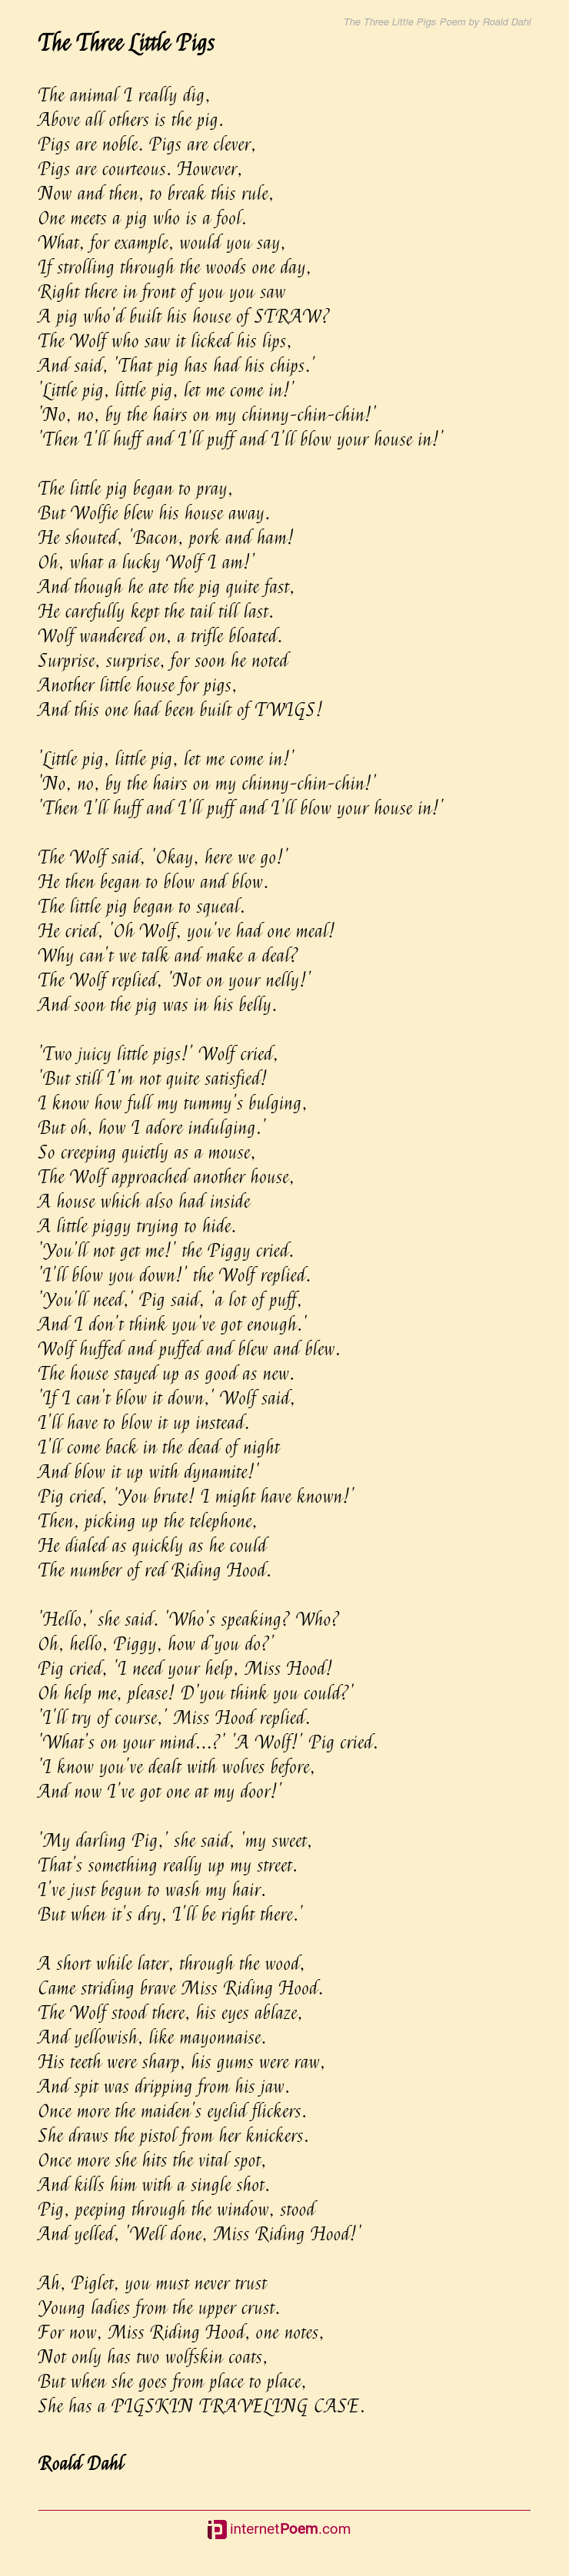 The Three Little Pigs Poem By Roald Dahl